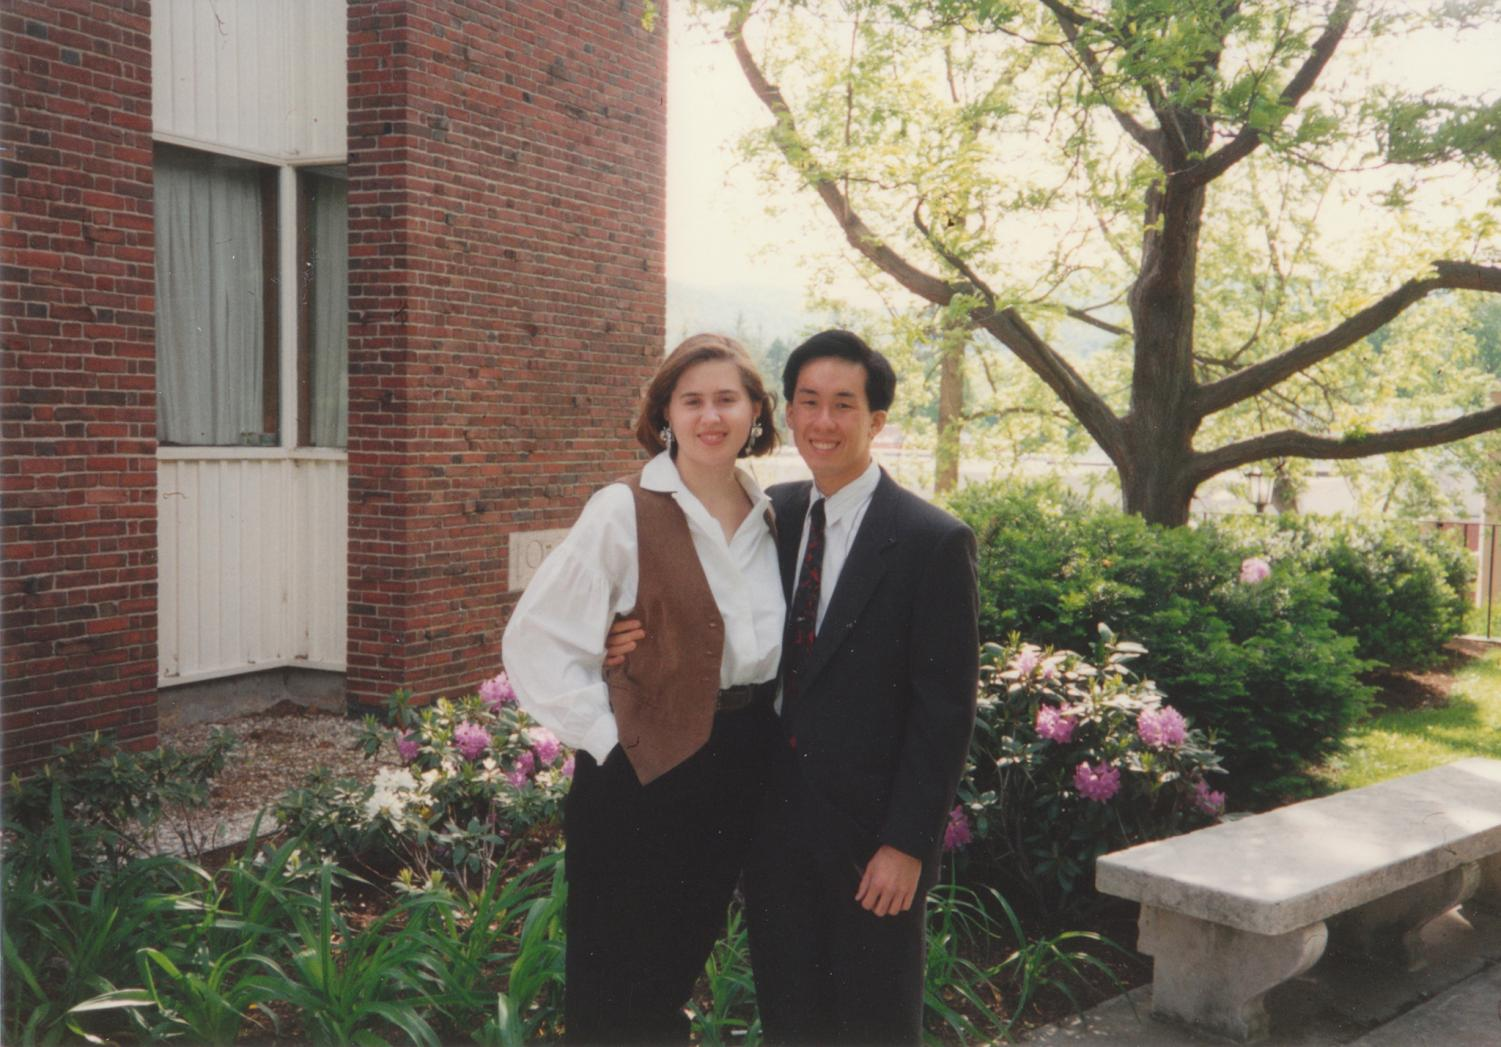 Dennis Kuo '93 and Kathrine Kuo '93